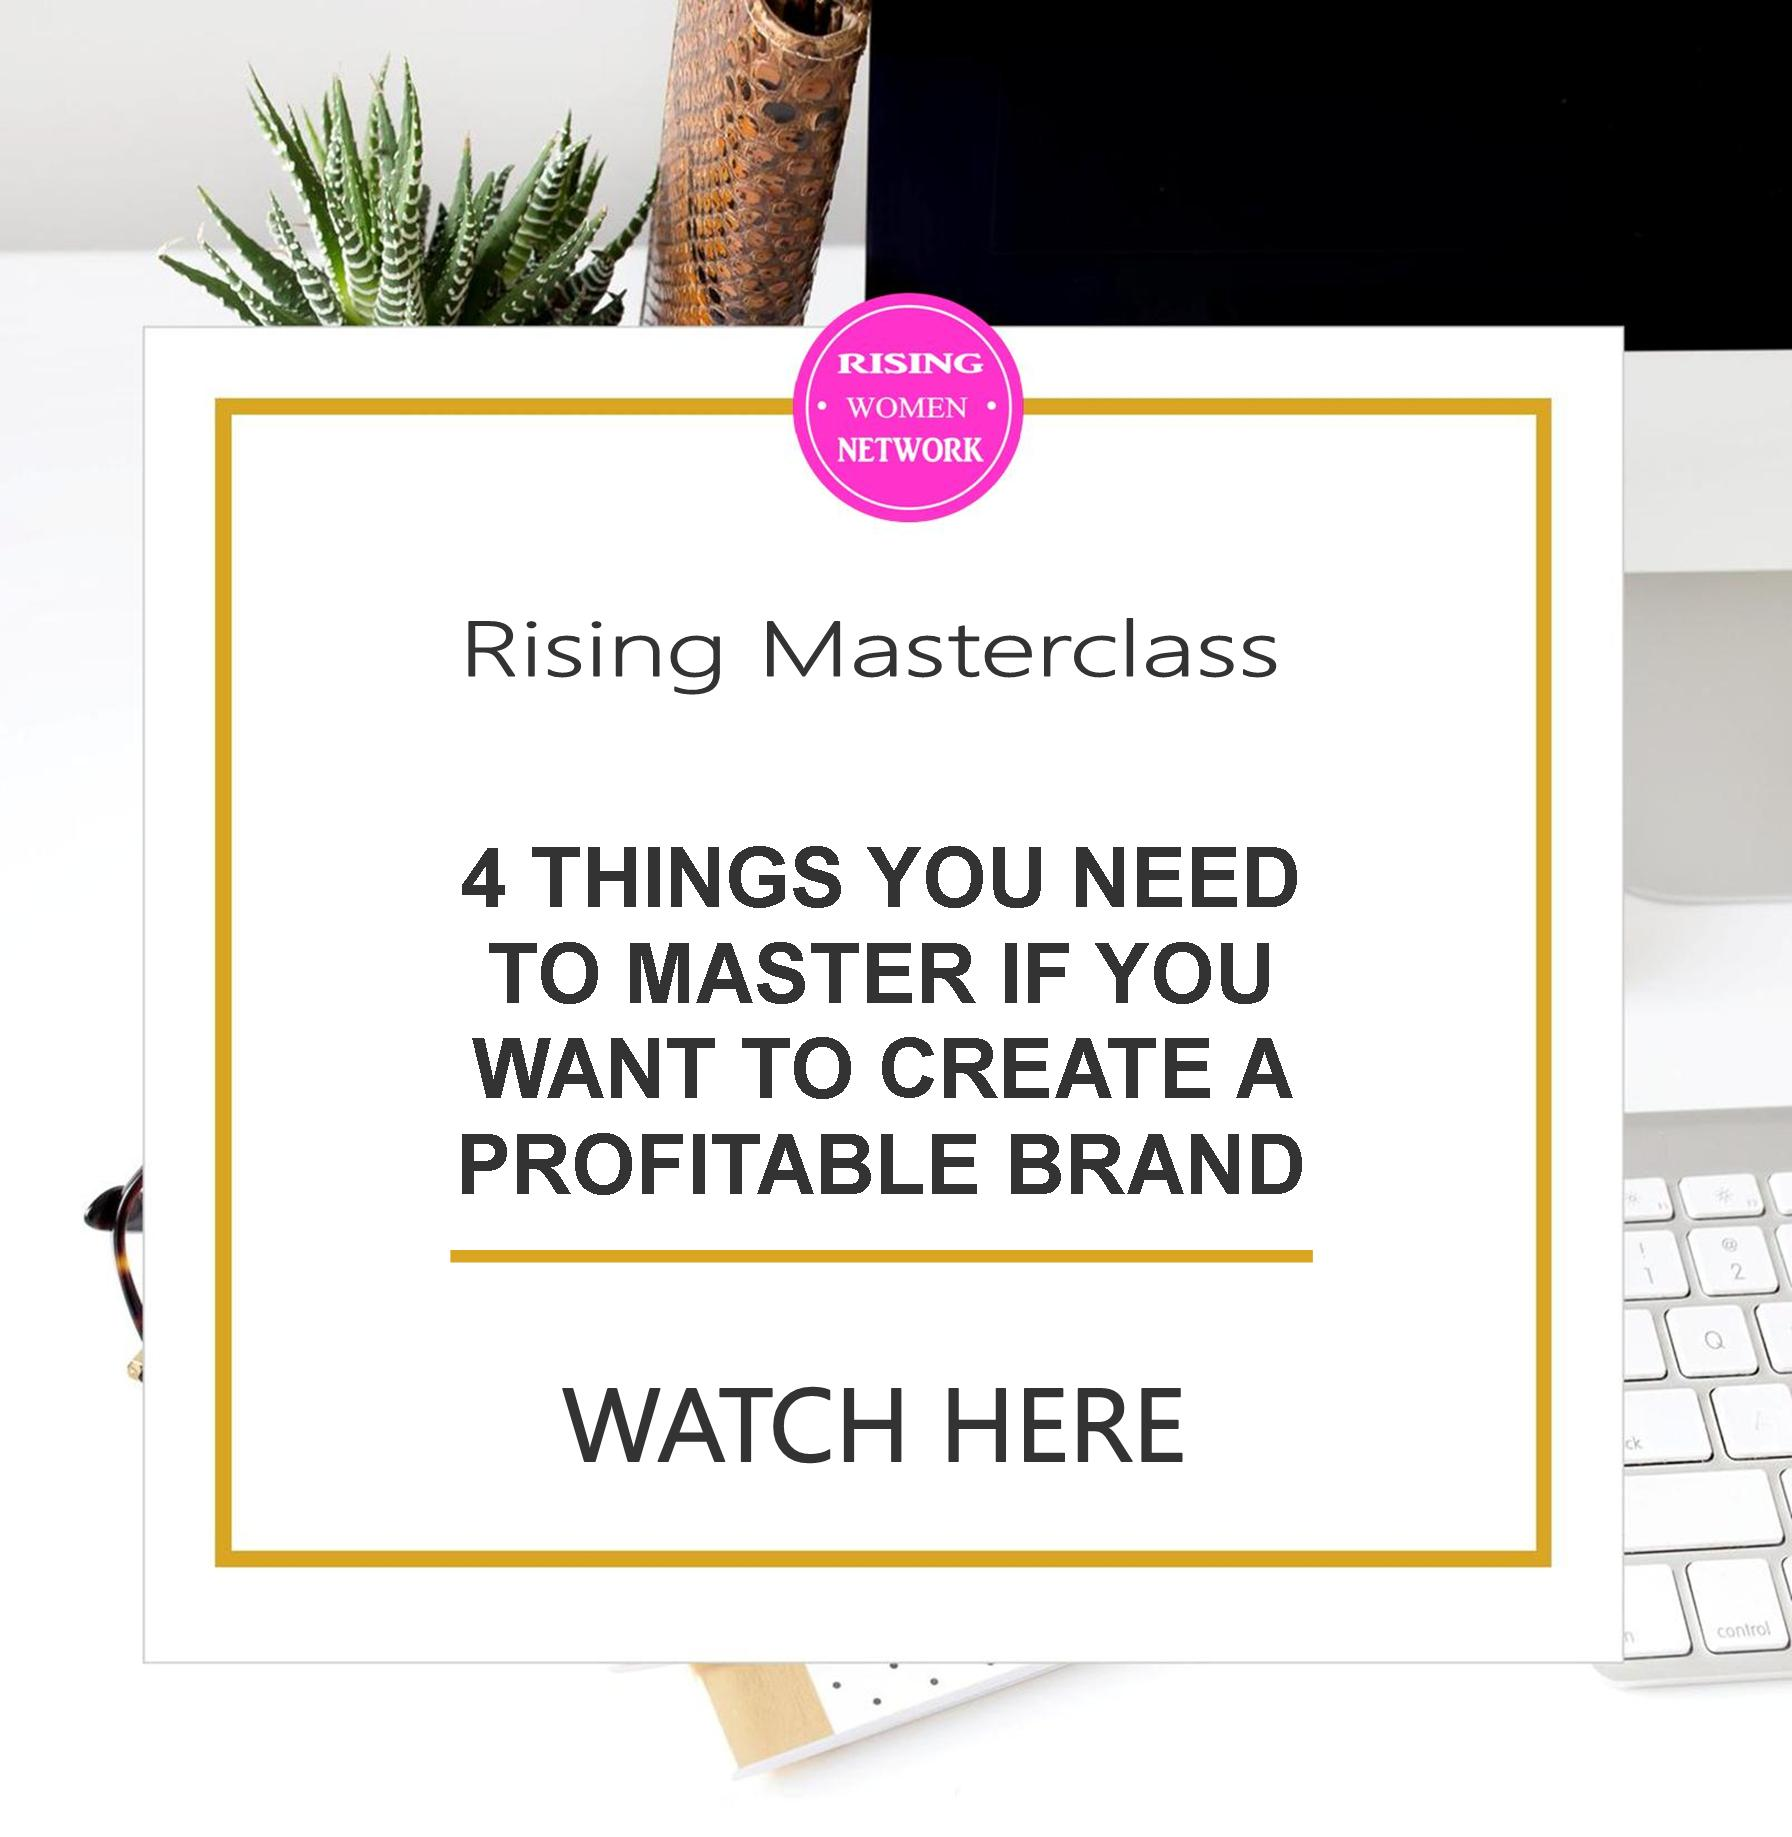 4 Things You Need to Master if You Want to Create a Profitable Brand